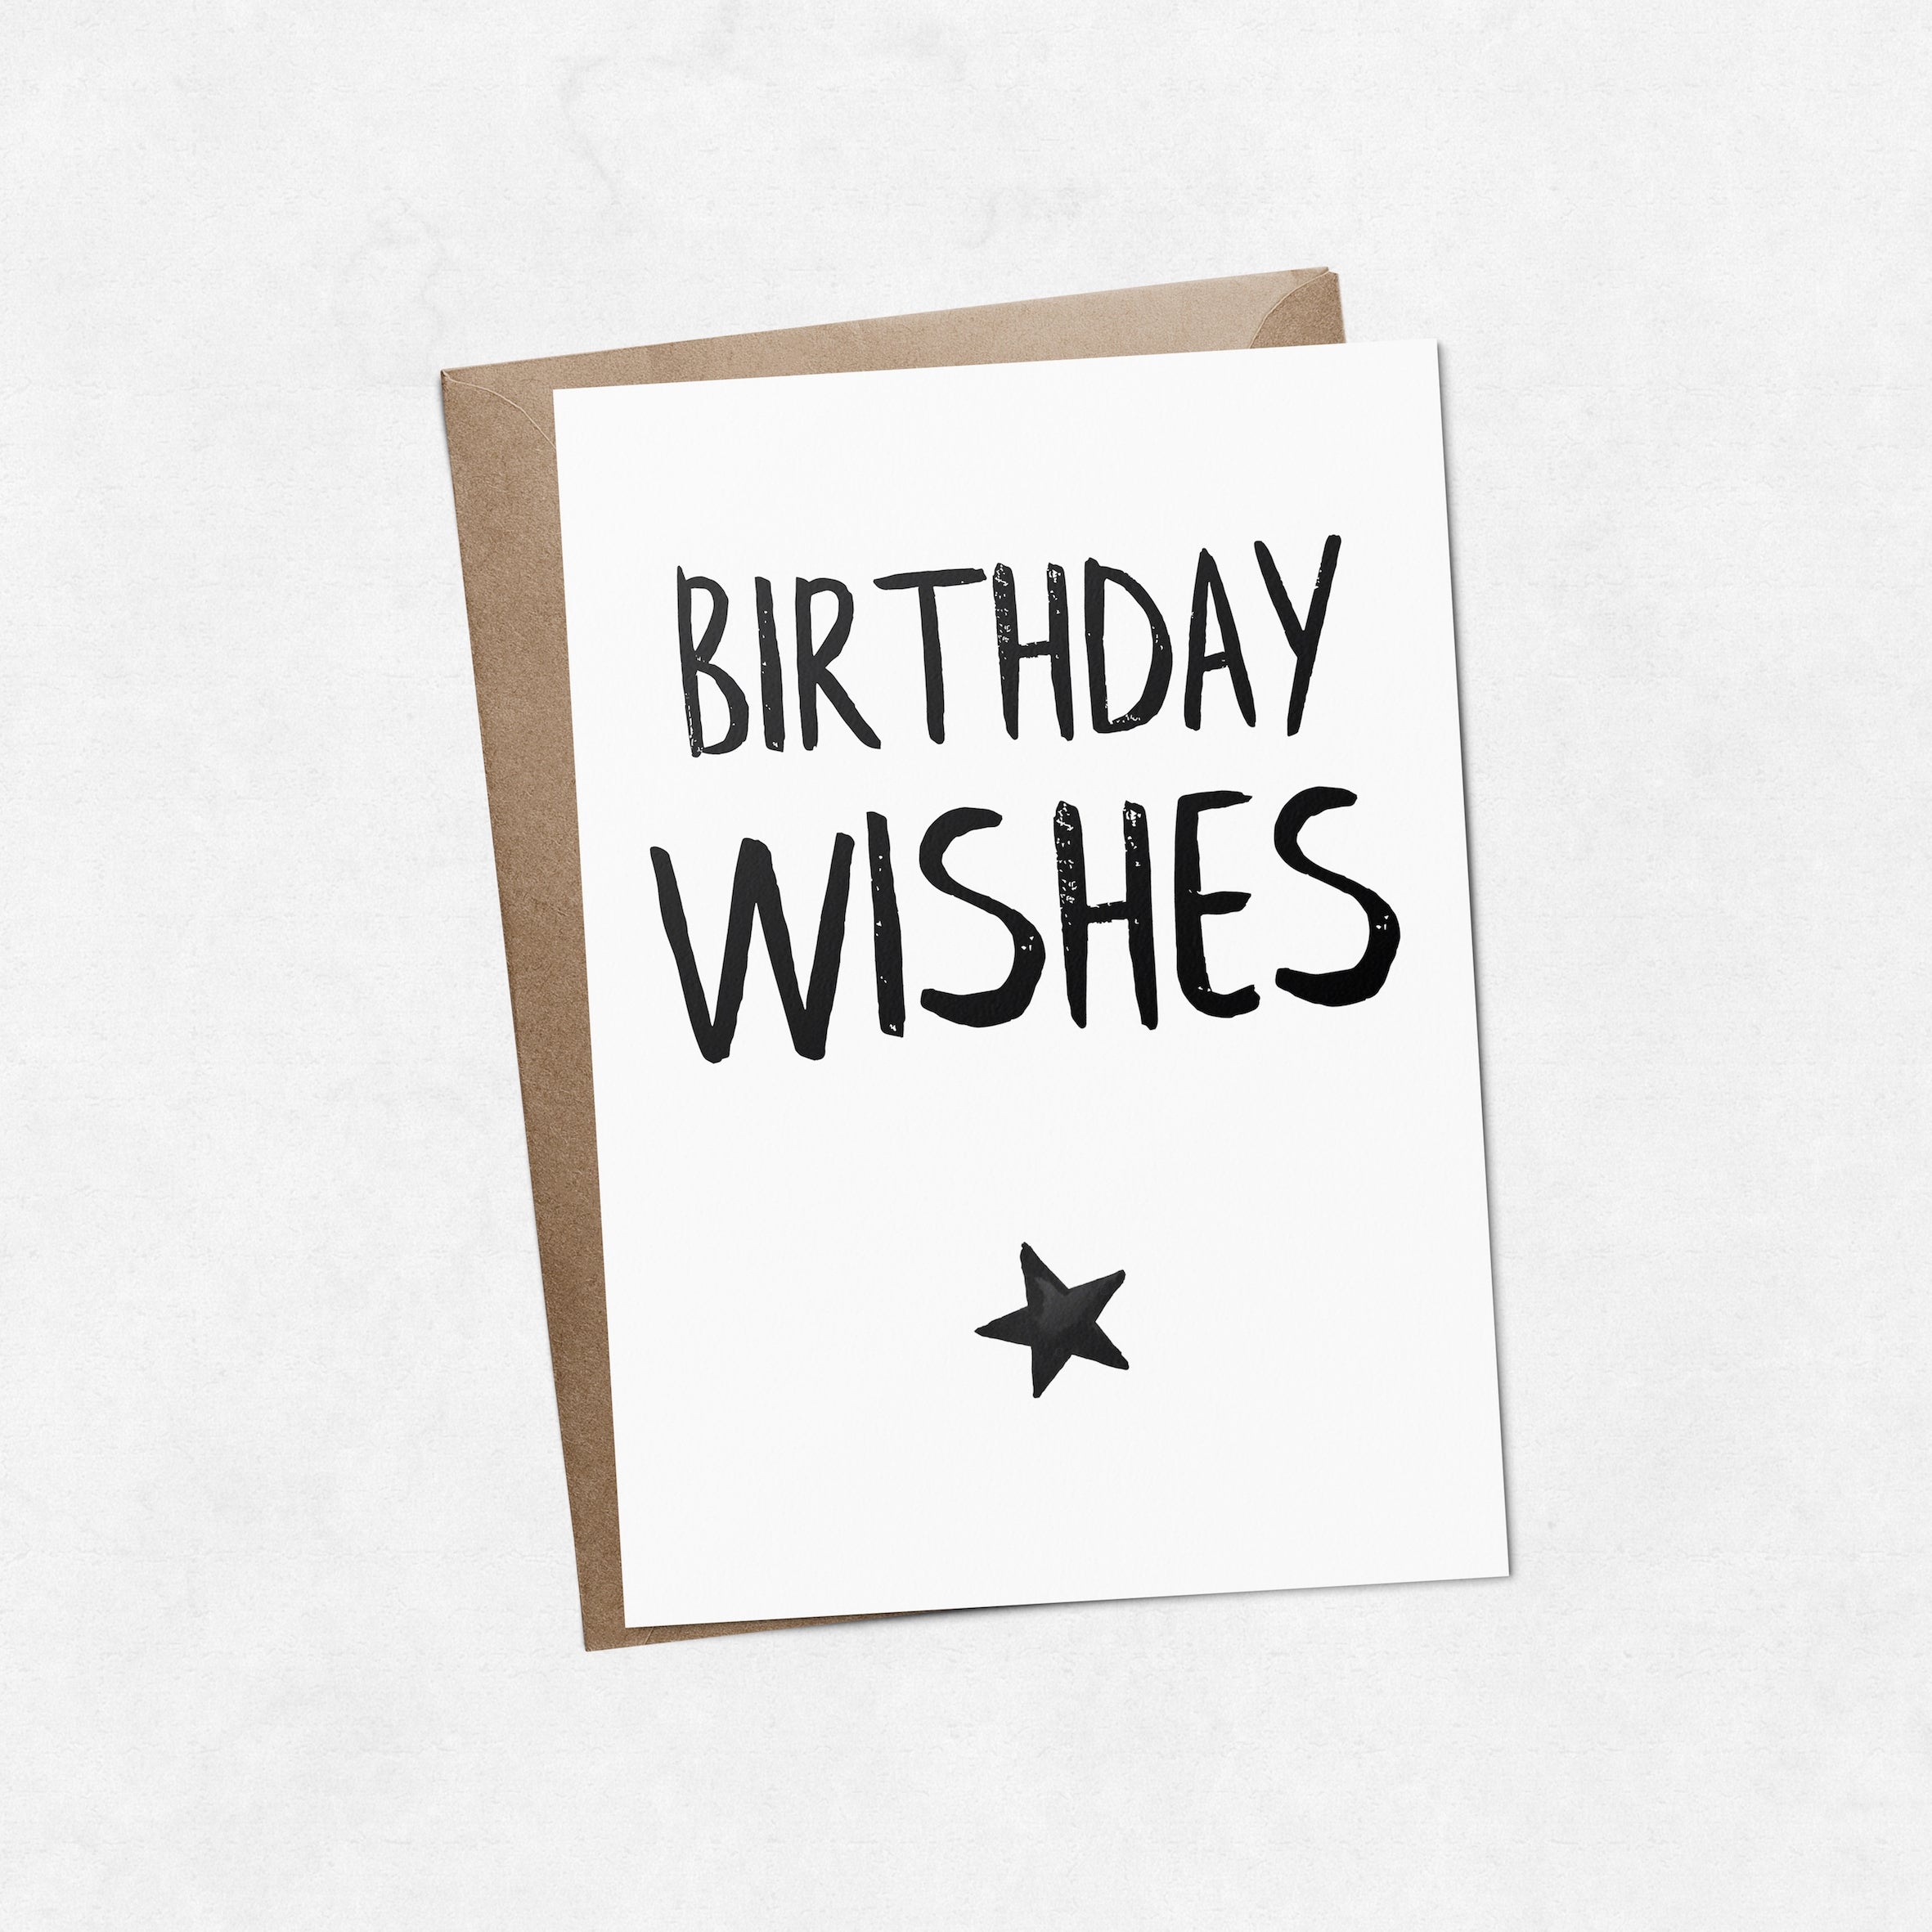 'Birthday wishes' with star brush letter A6 greeting card | ink & white